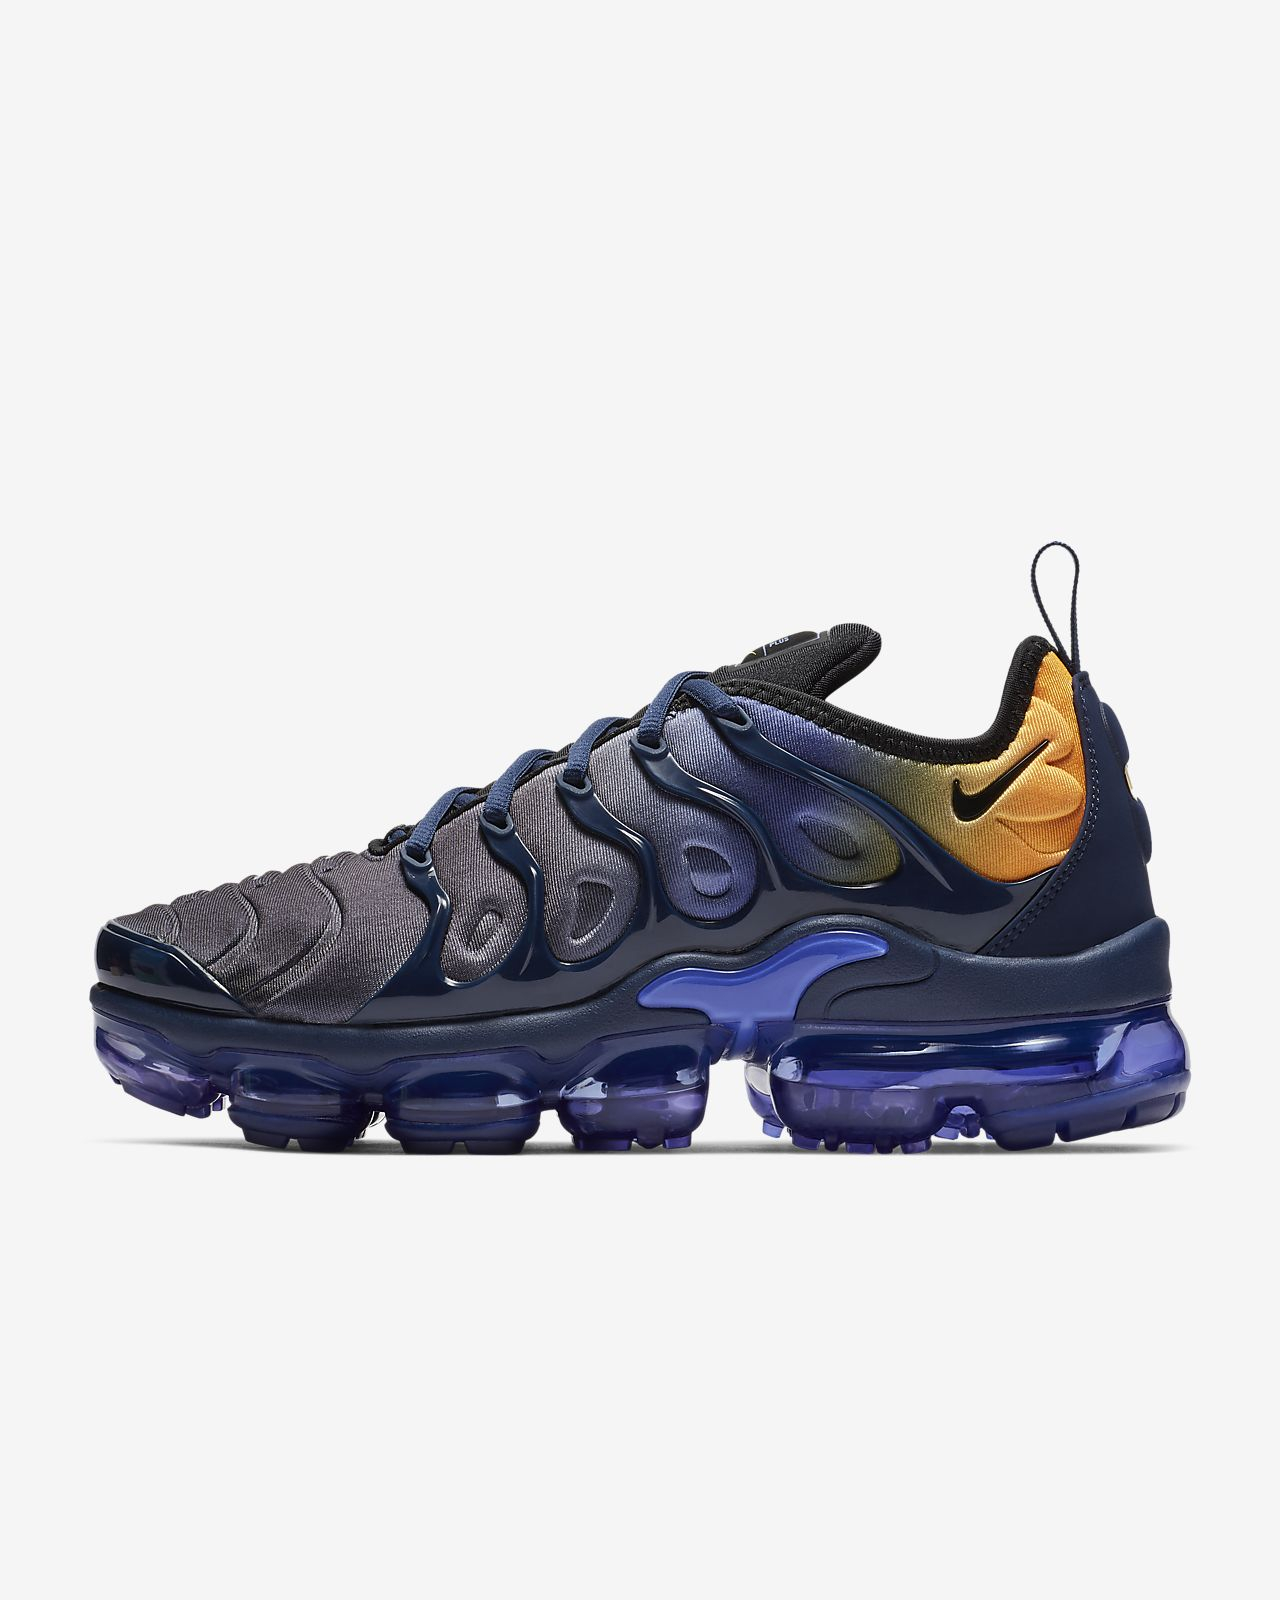 premium selection fd4a8 66e88 ... Nike Air VaporMax Plus Womens Shoe